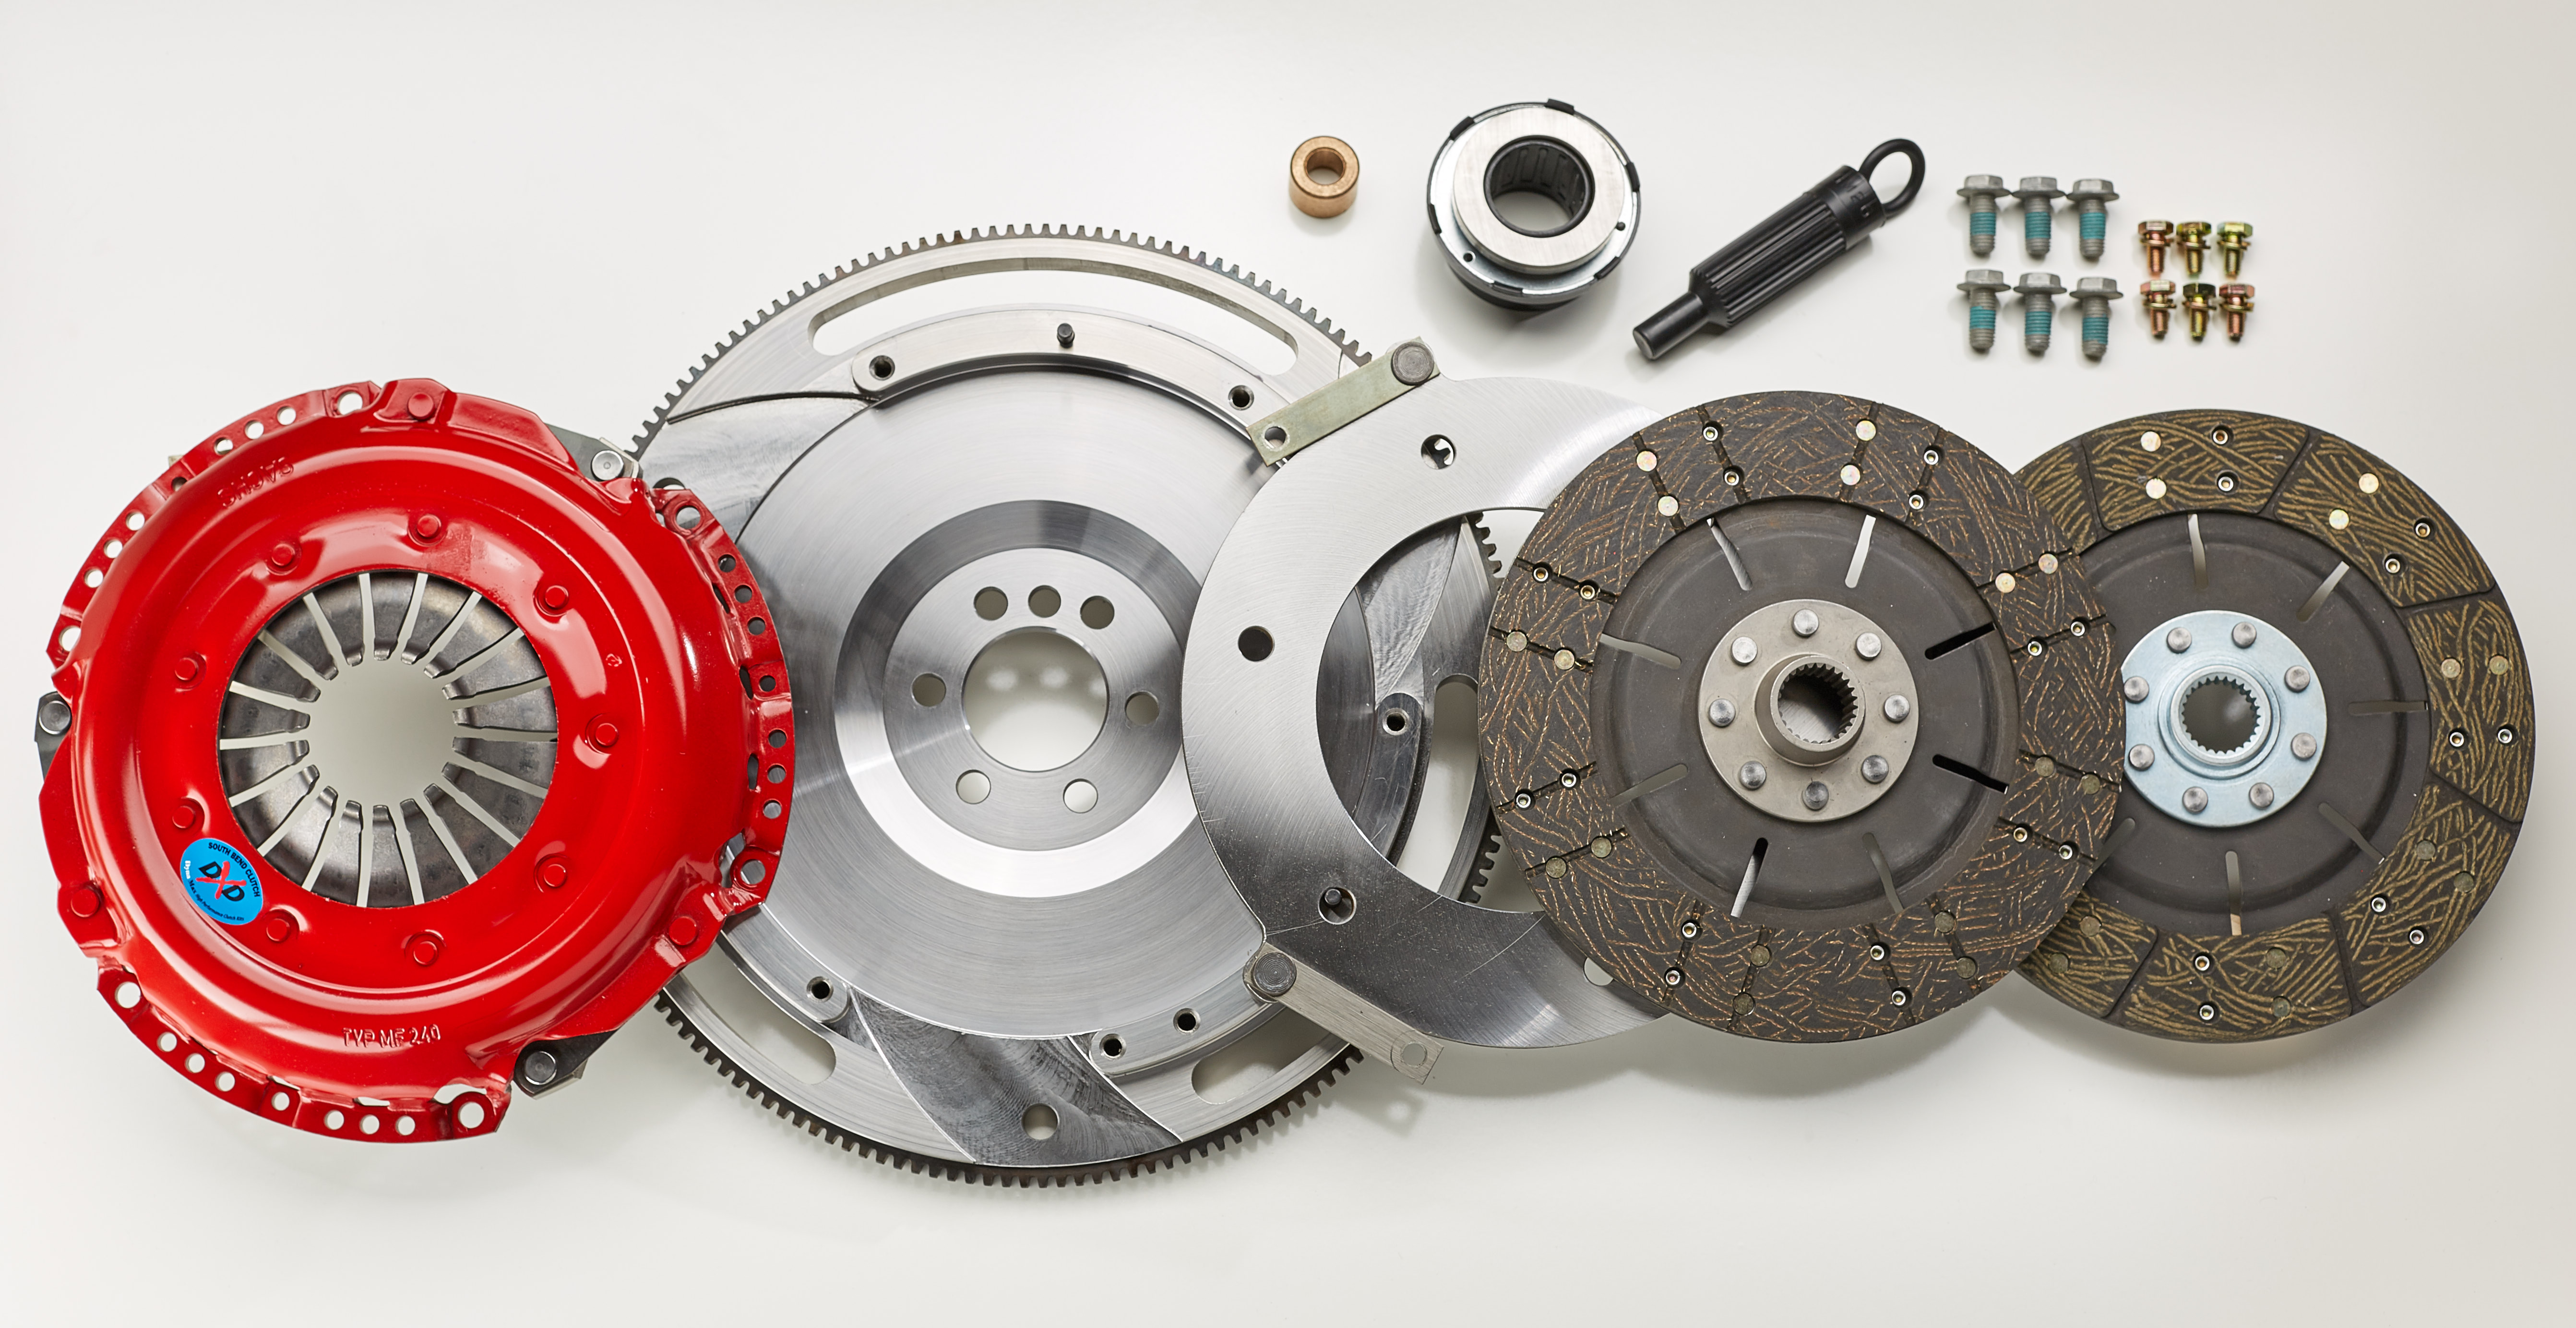 2009-2012 Ford Mustang Shelby GT500 5.4L South Bend Clutch Dual Disc Clutch w/Flywheel